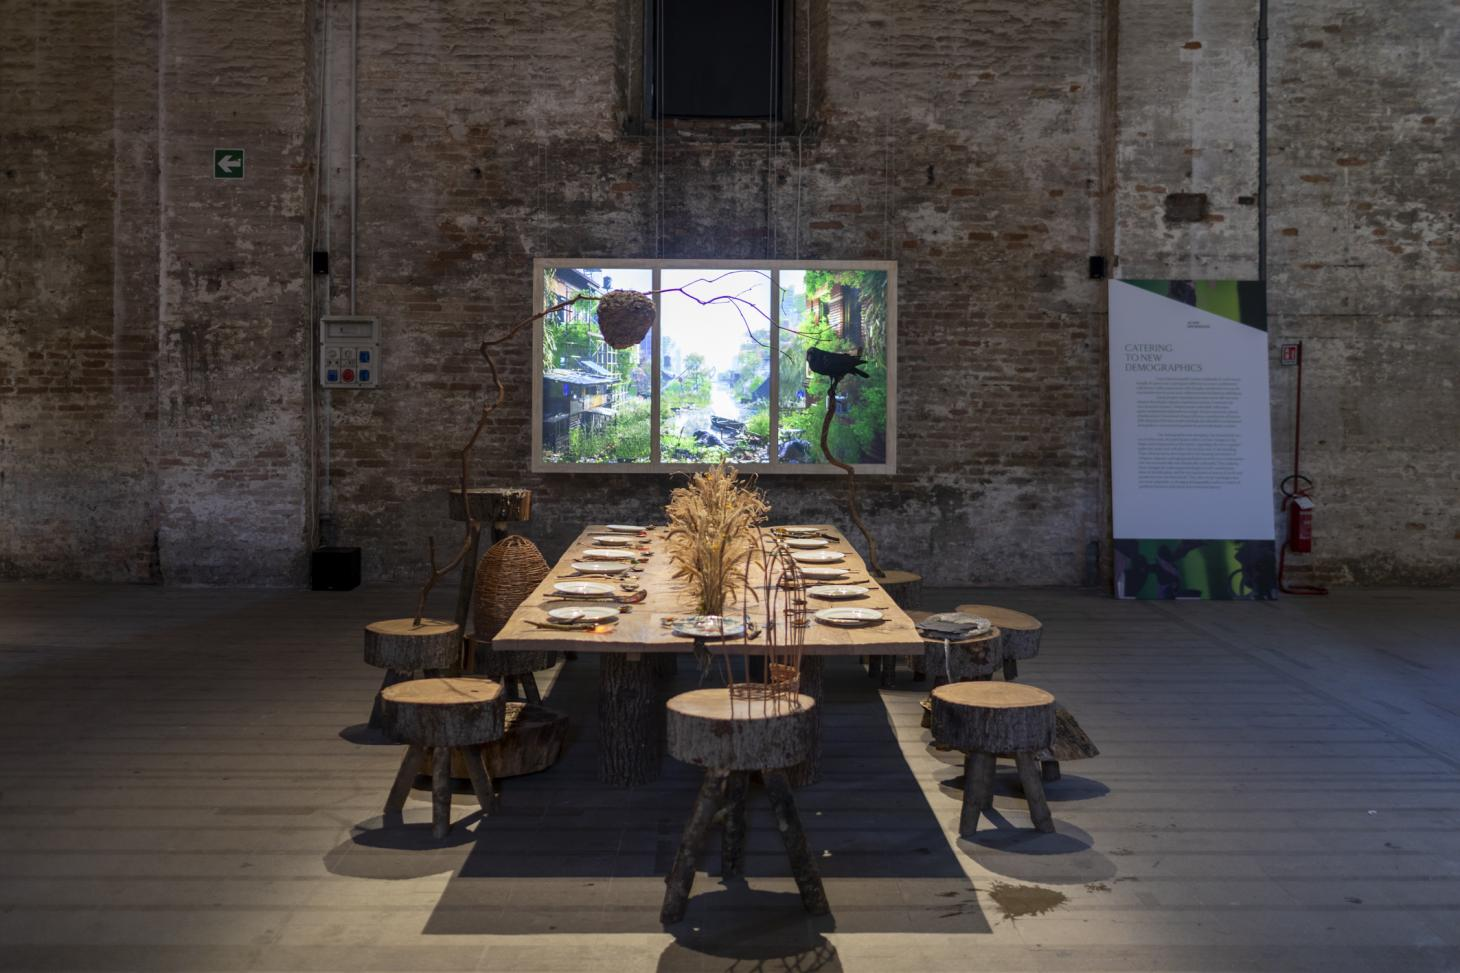 superflux dining table at 2021 Venice architecture biennale